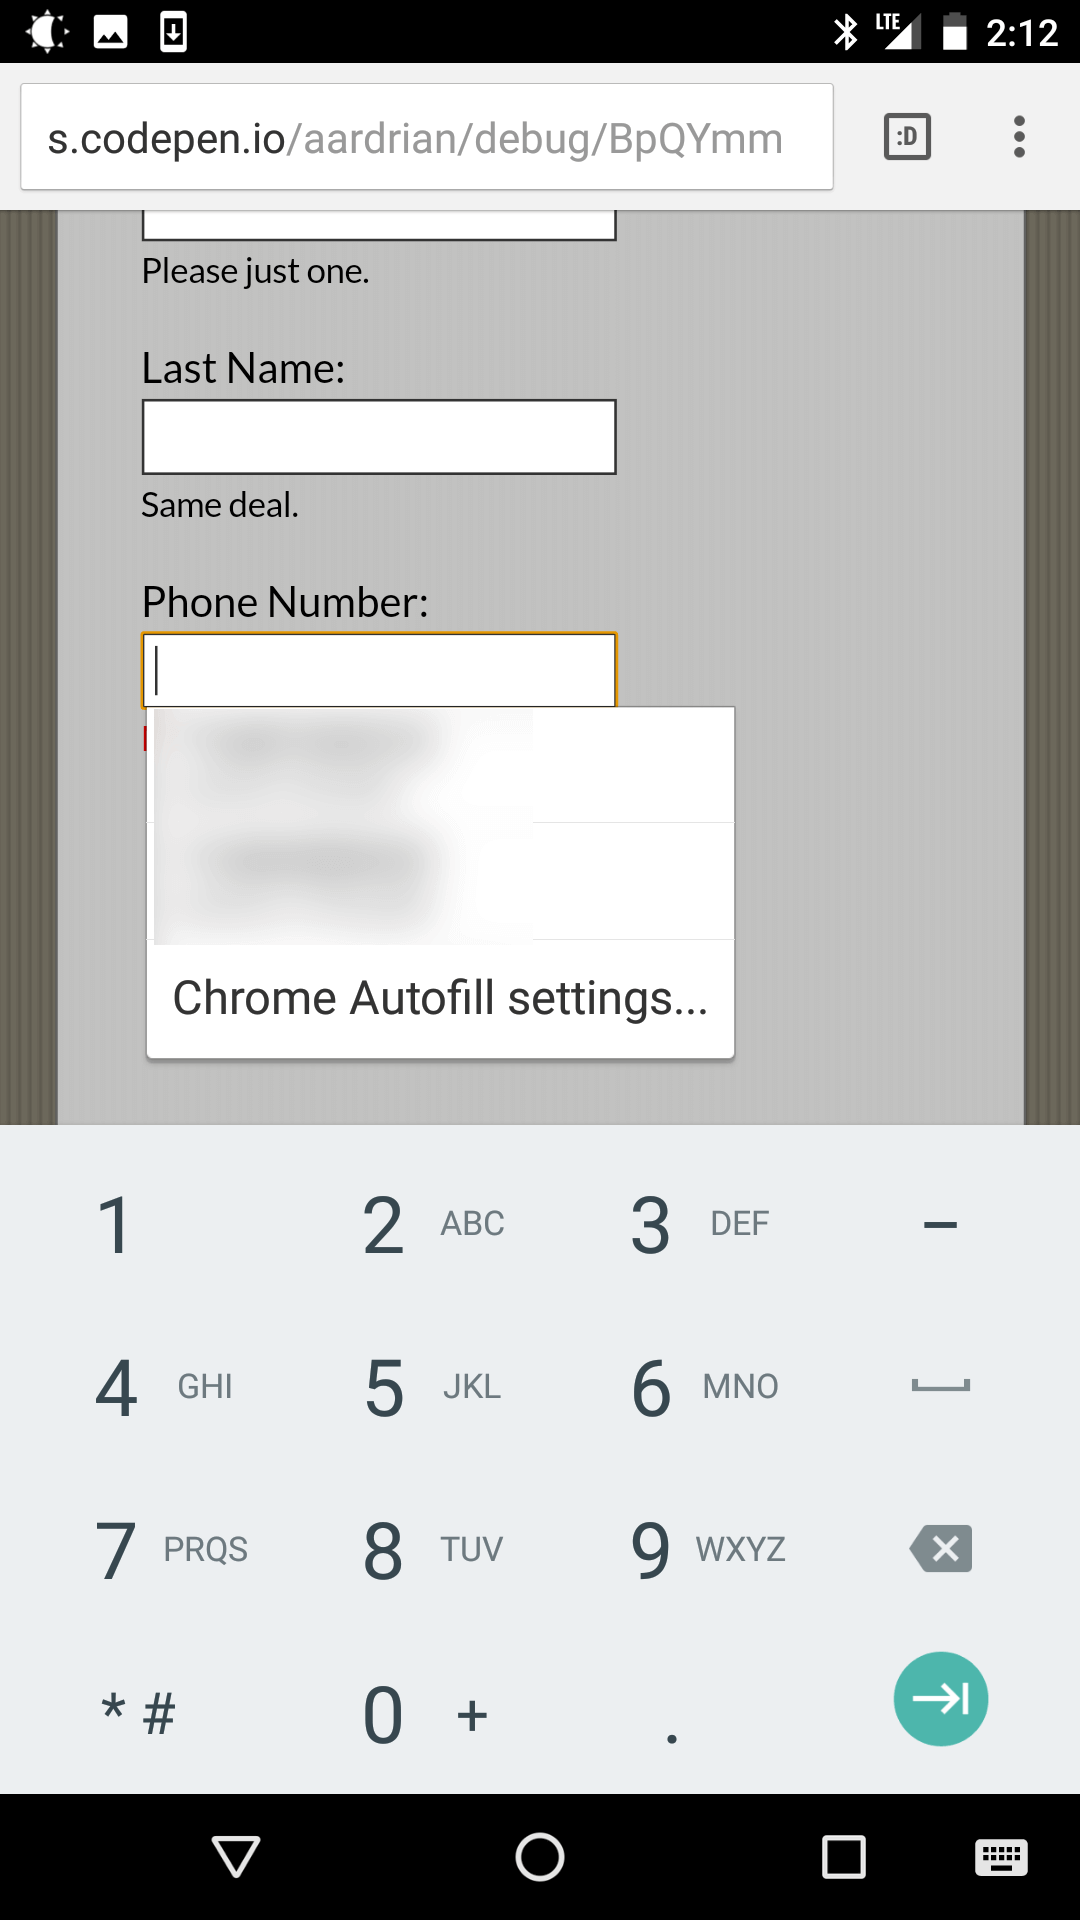 Screen shot from Chrome on Android showing auto-complete on the third field.